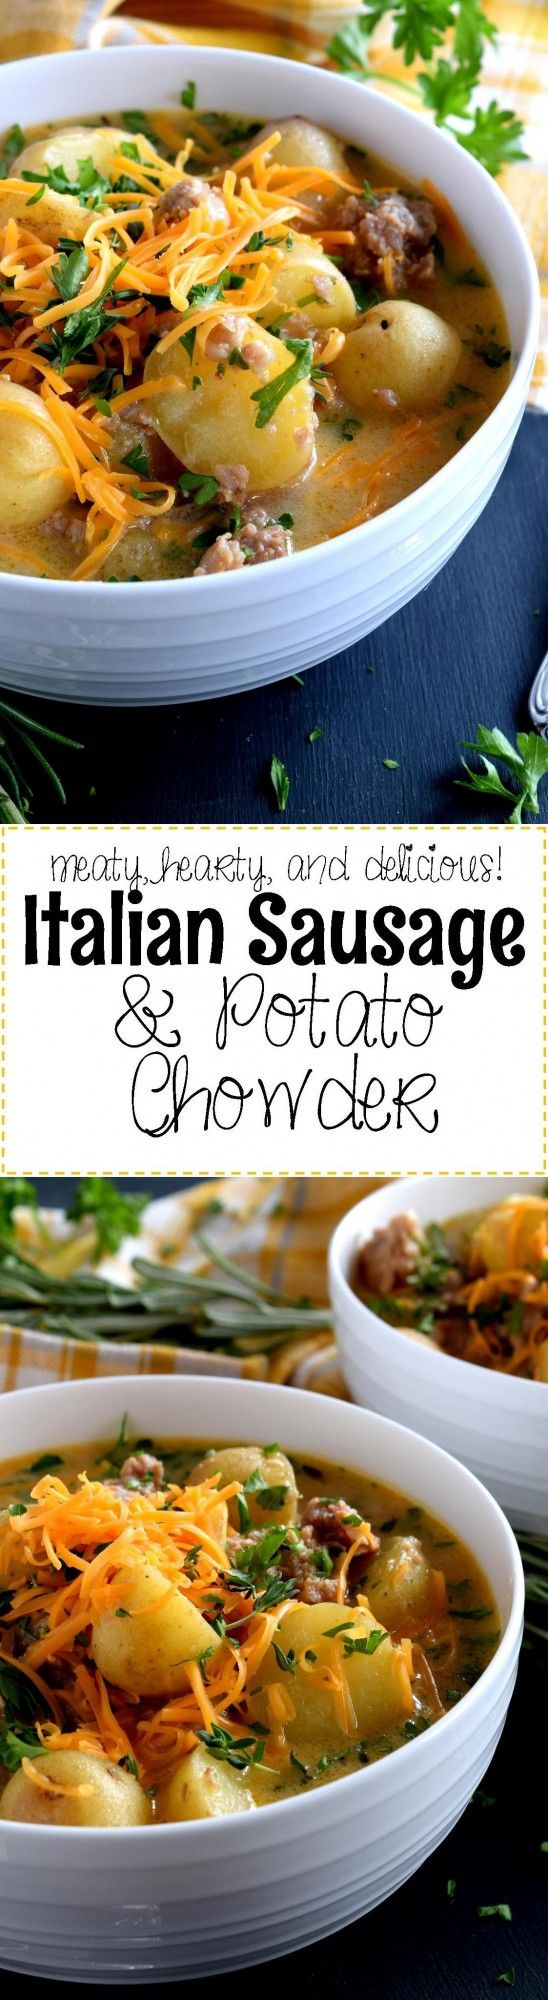 A savoury and hearty chowder which satisfies the cold weather hunger.  Italian Sausage and Potato Chowder is flavourful and filling; you're going to love this recipe! A few weeks back, my favourite grocery store had a sale on Italian sausages. …